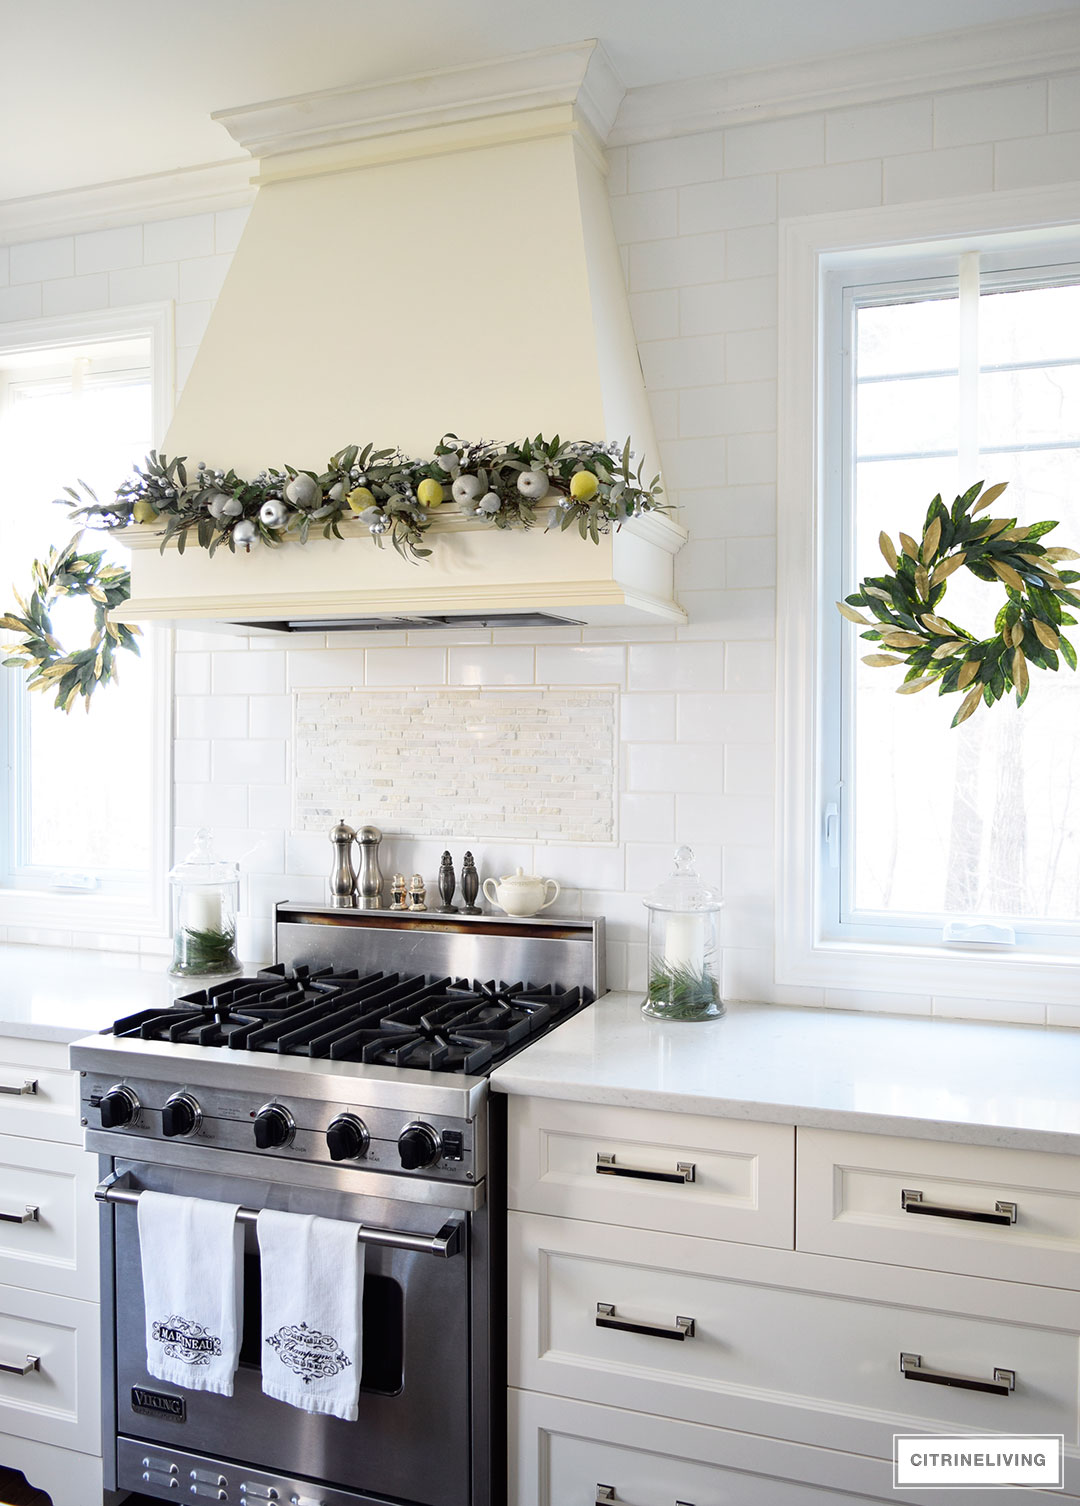 Christmas Home Tour - Elegant kitchen with mixed metallics and holiday greenery create a sophisticated Holiday theme